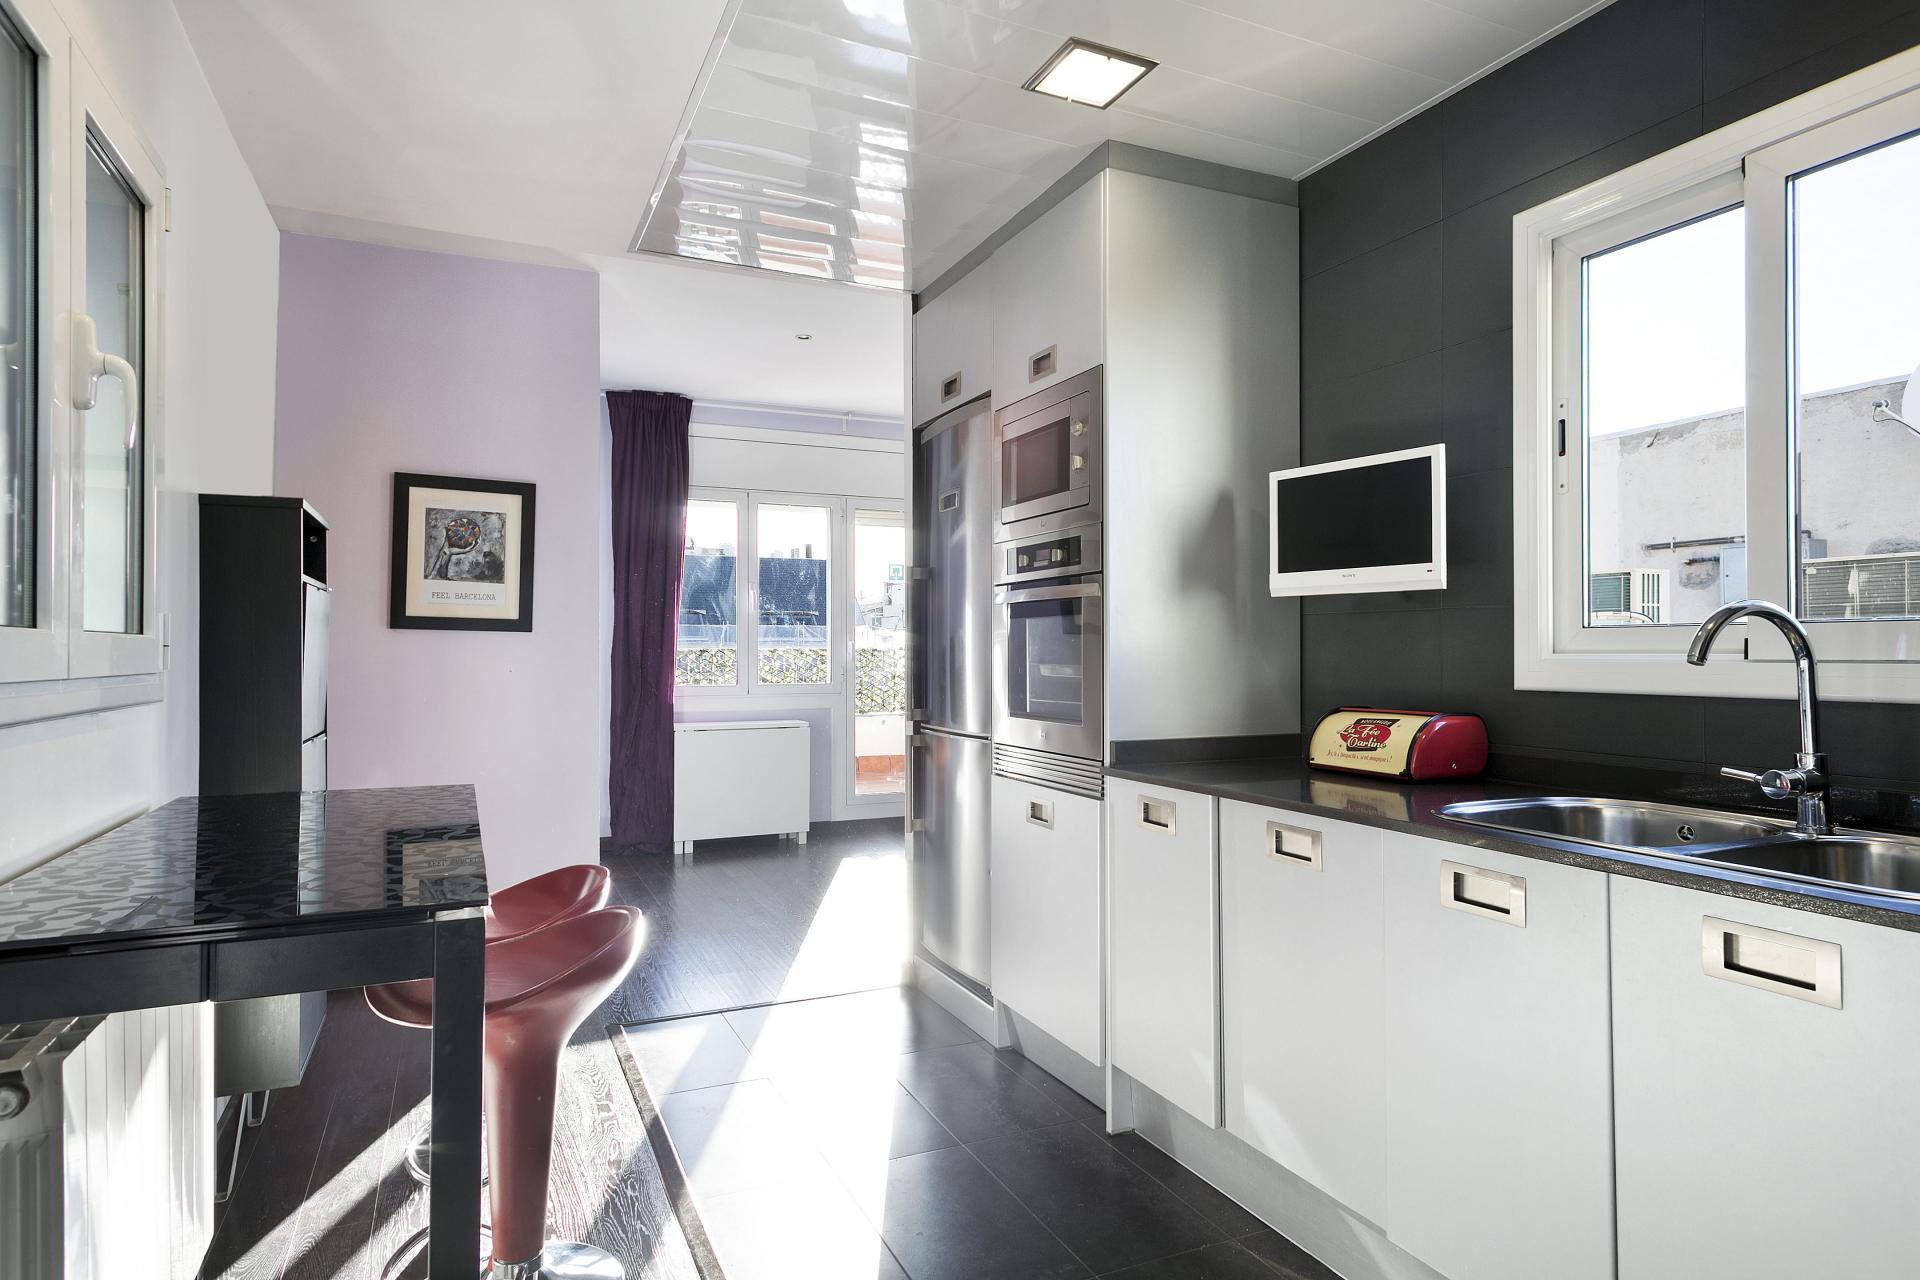 Large kitchen at Sunny Serviced Apartments, Eixample, Barcelona - Citybase Apartments